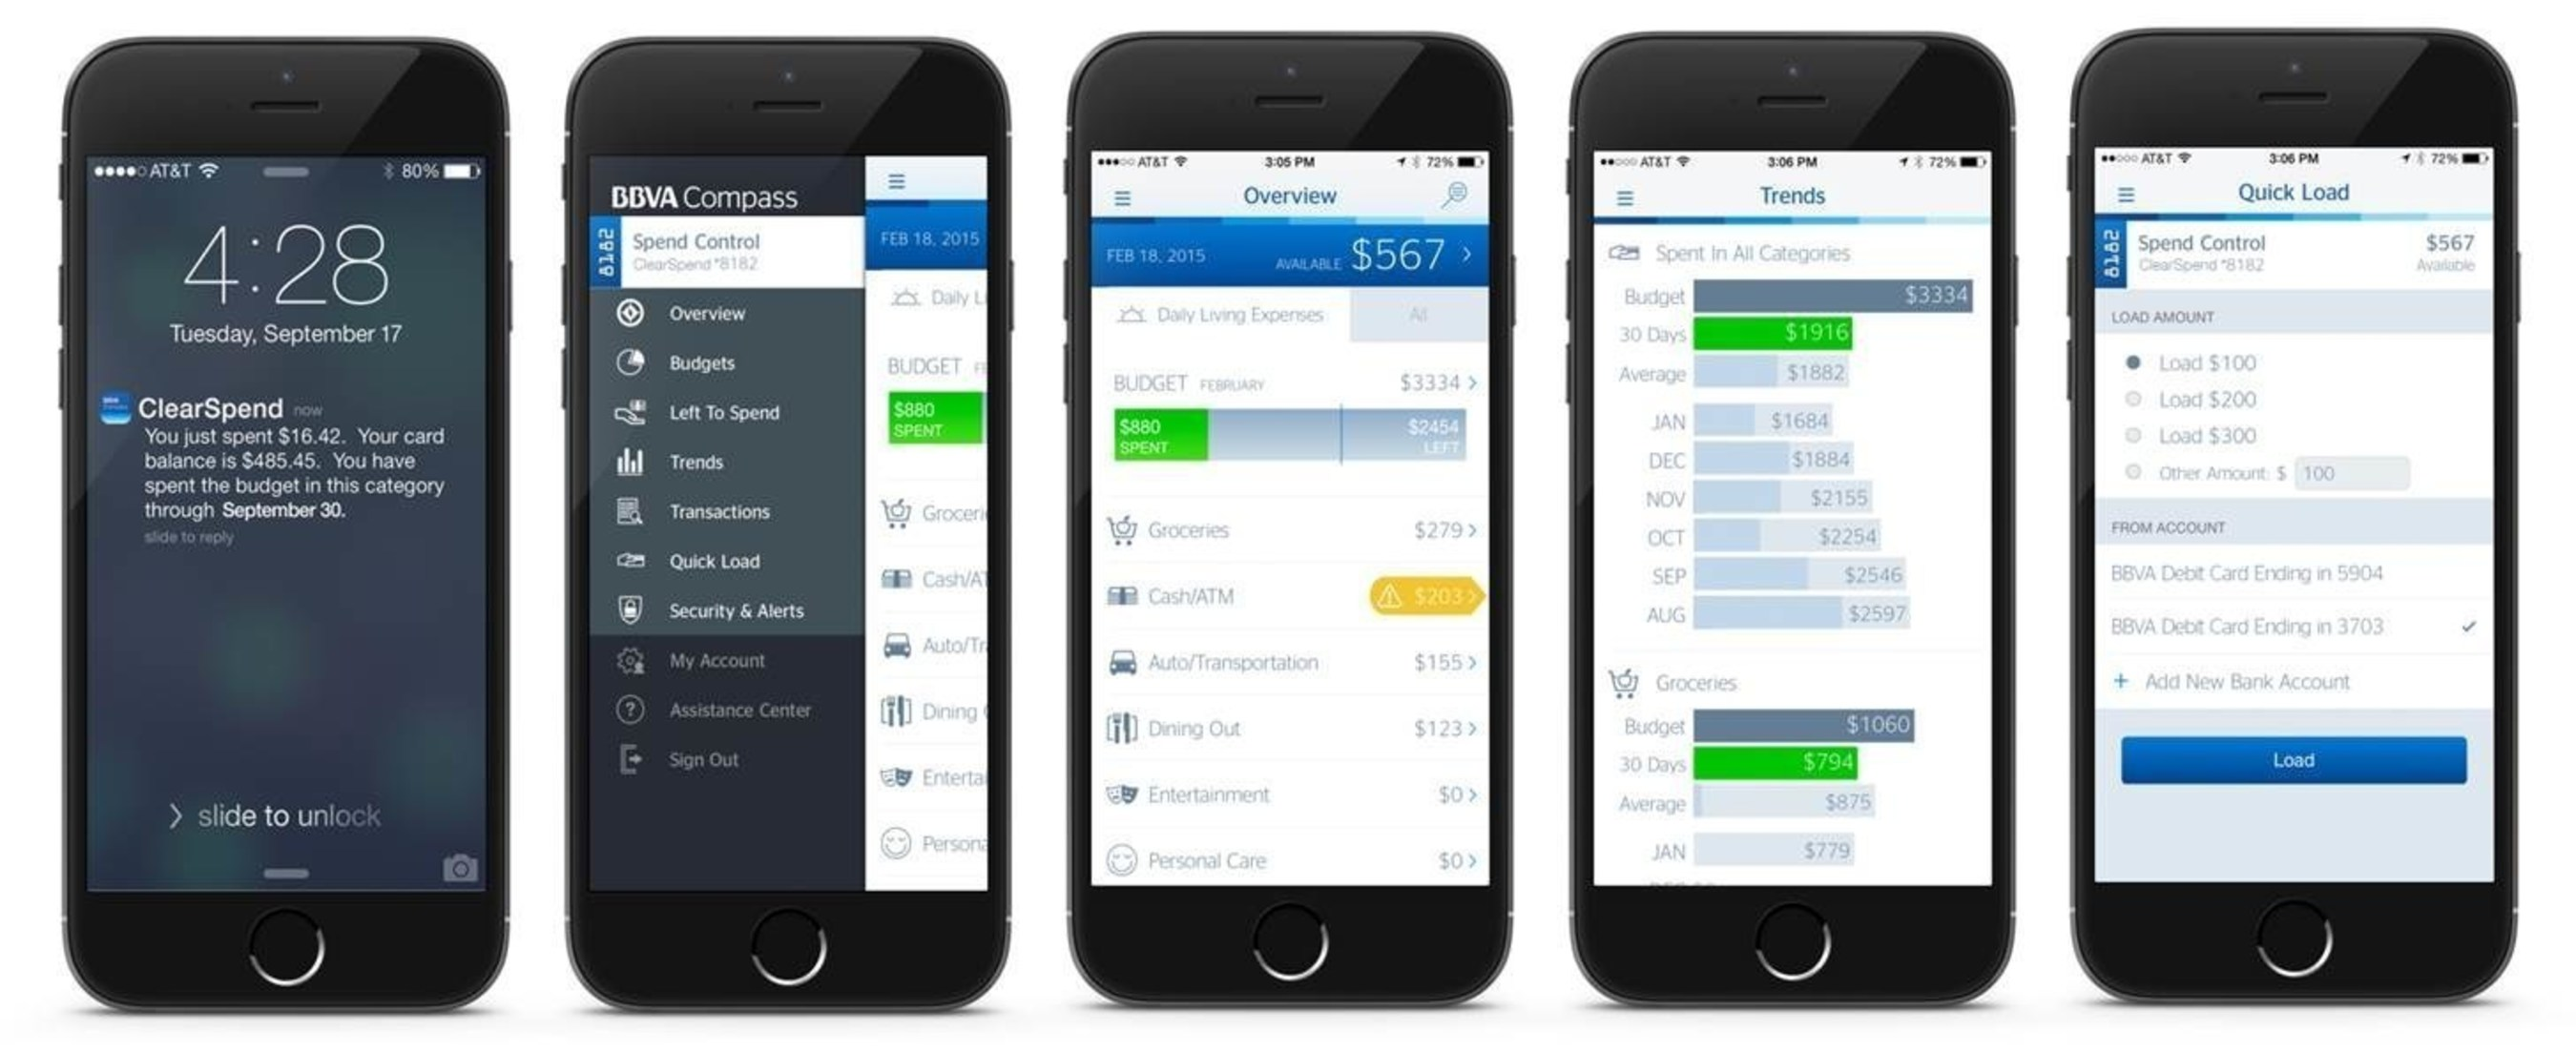 After the first 30 days of using ClearSpend, budgets and spending categories are automatically set up for users, providing better control of finances.